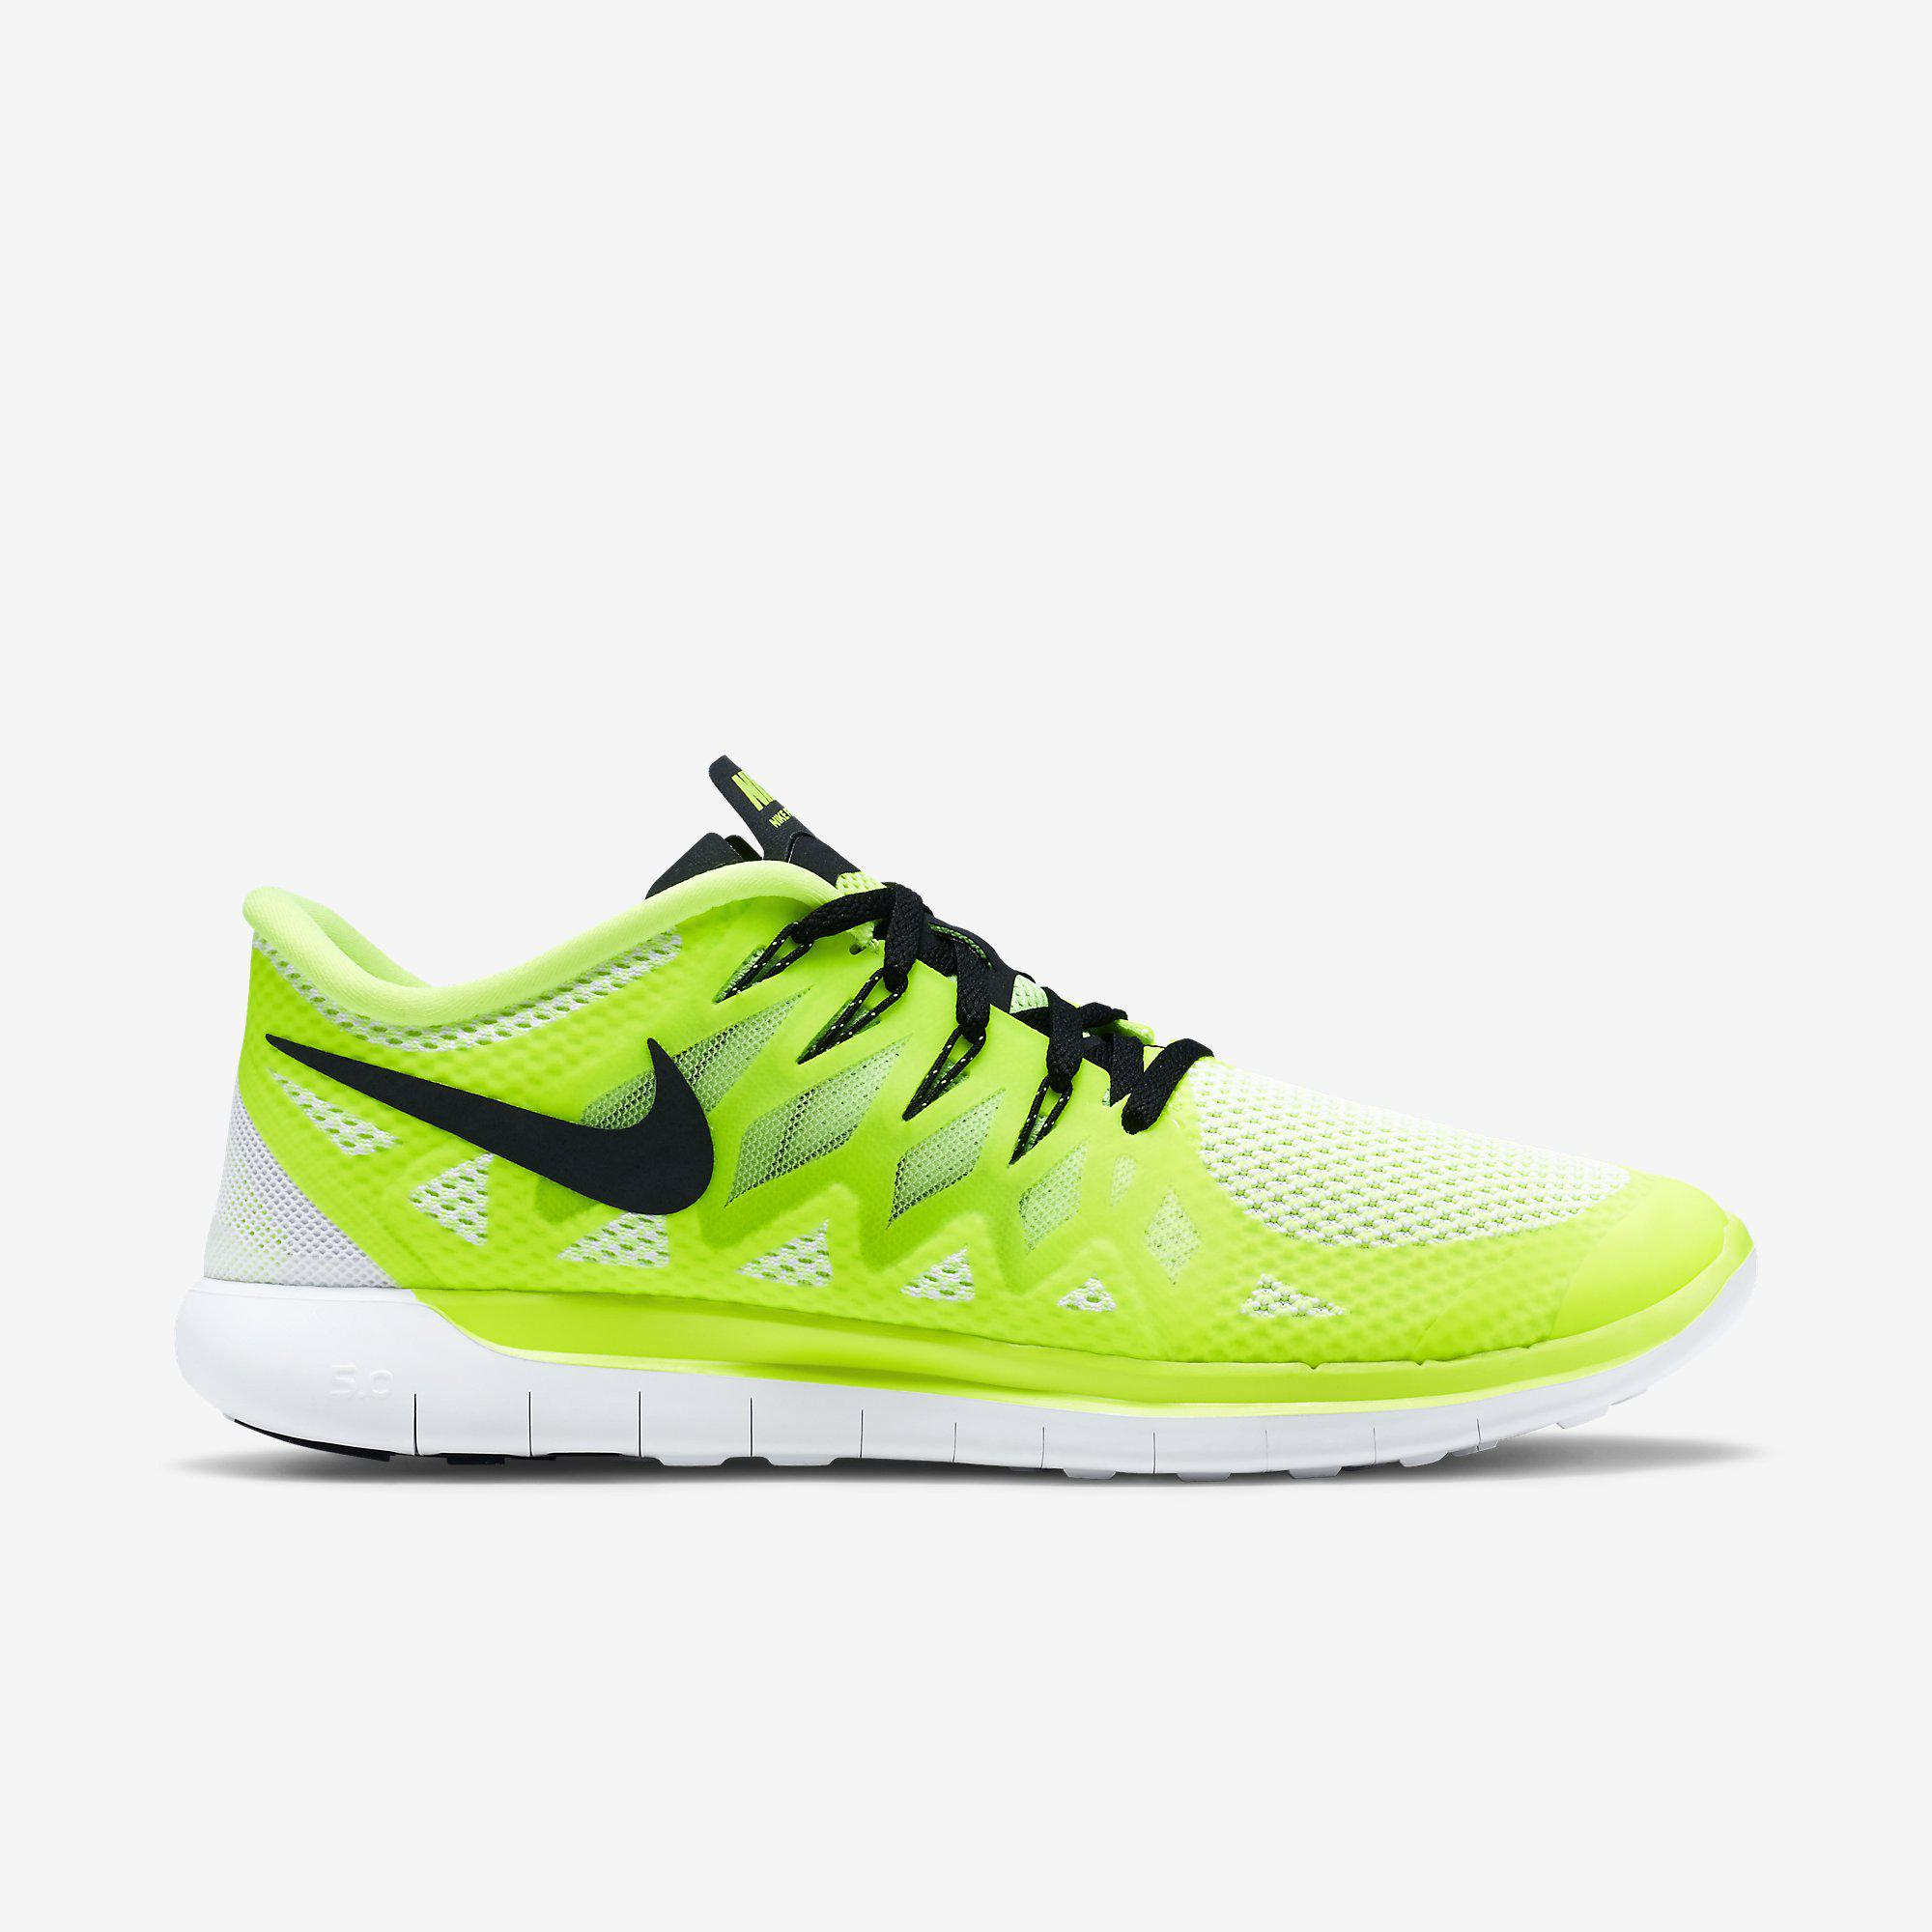 Nike Mens Free 5.0+ Running Shoes - Volt